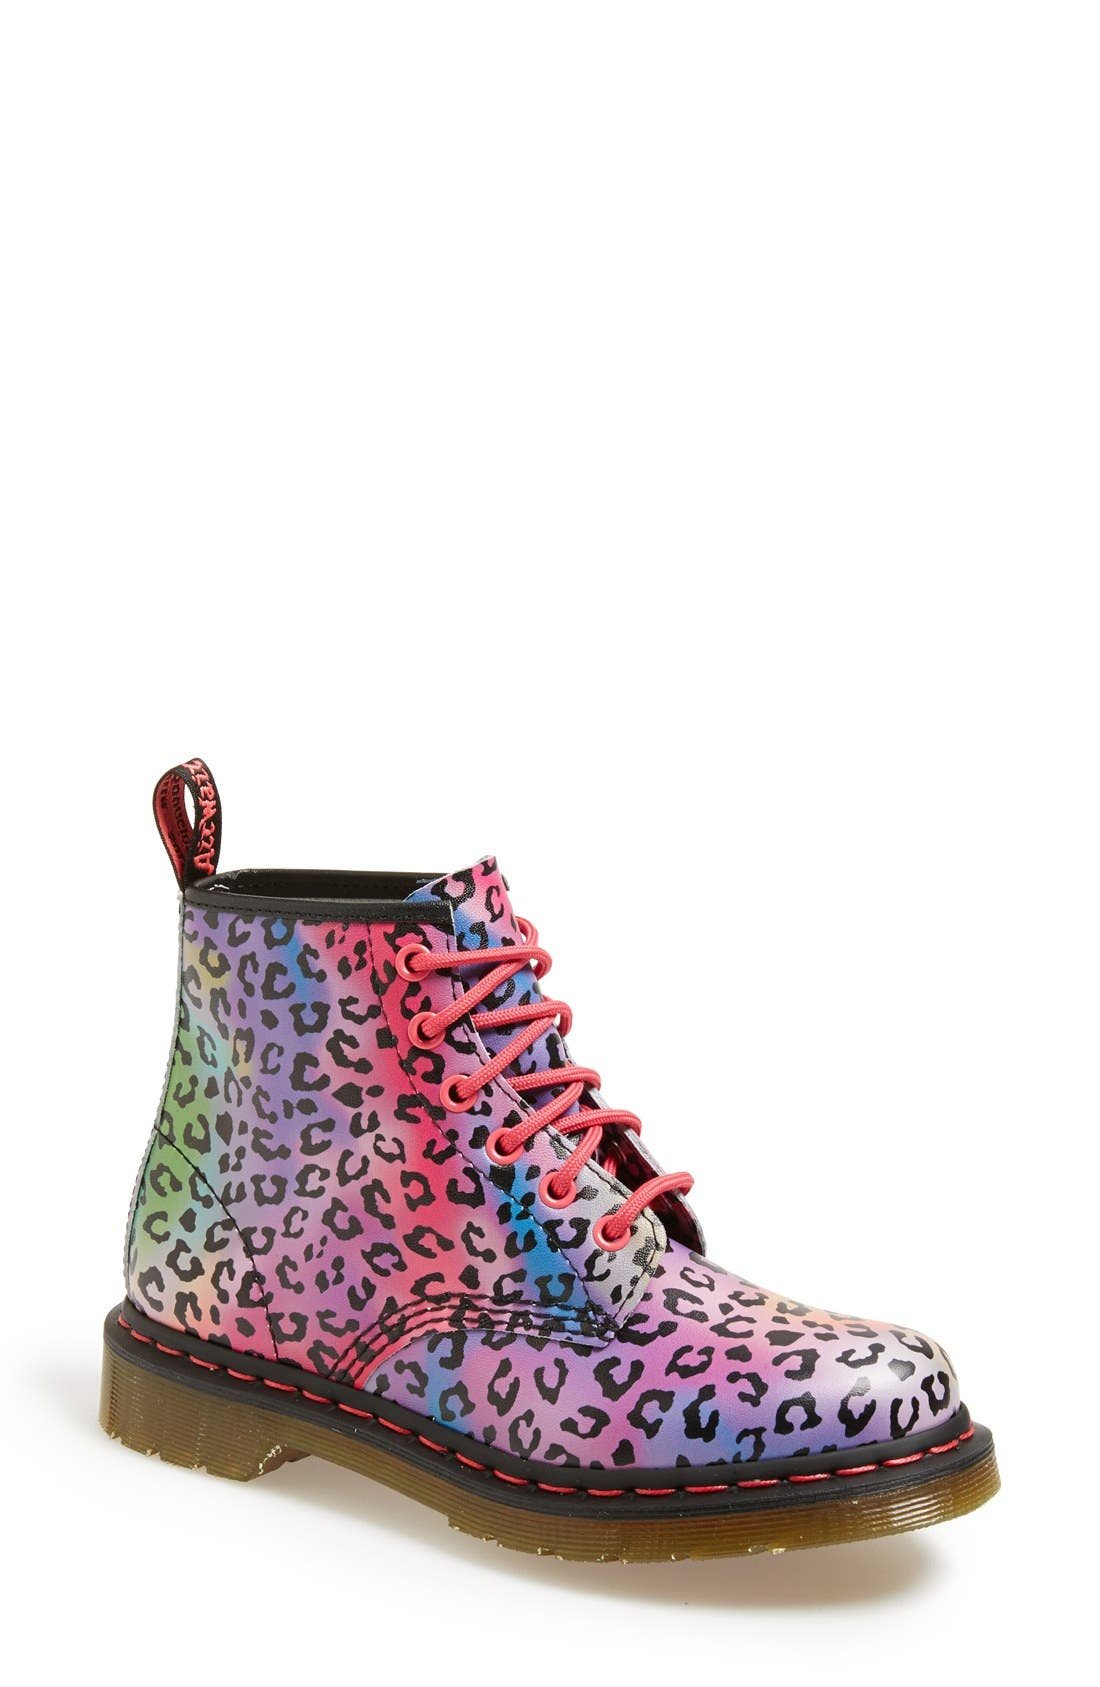 Alternate Image 1 Selected - Dr. Martens '101' Leopard Print Leather Boot (Women)